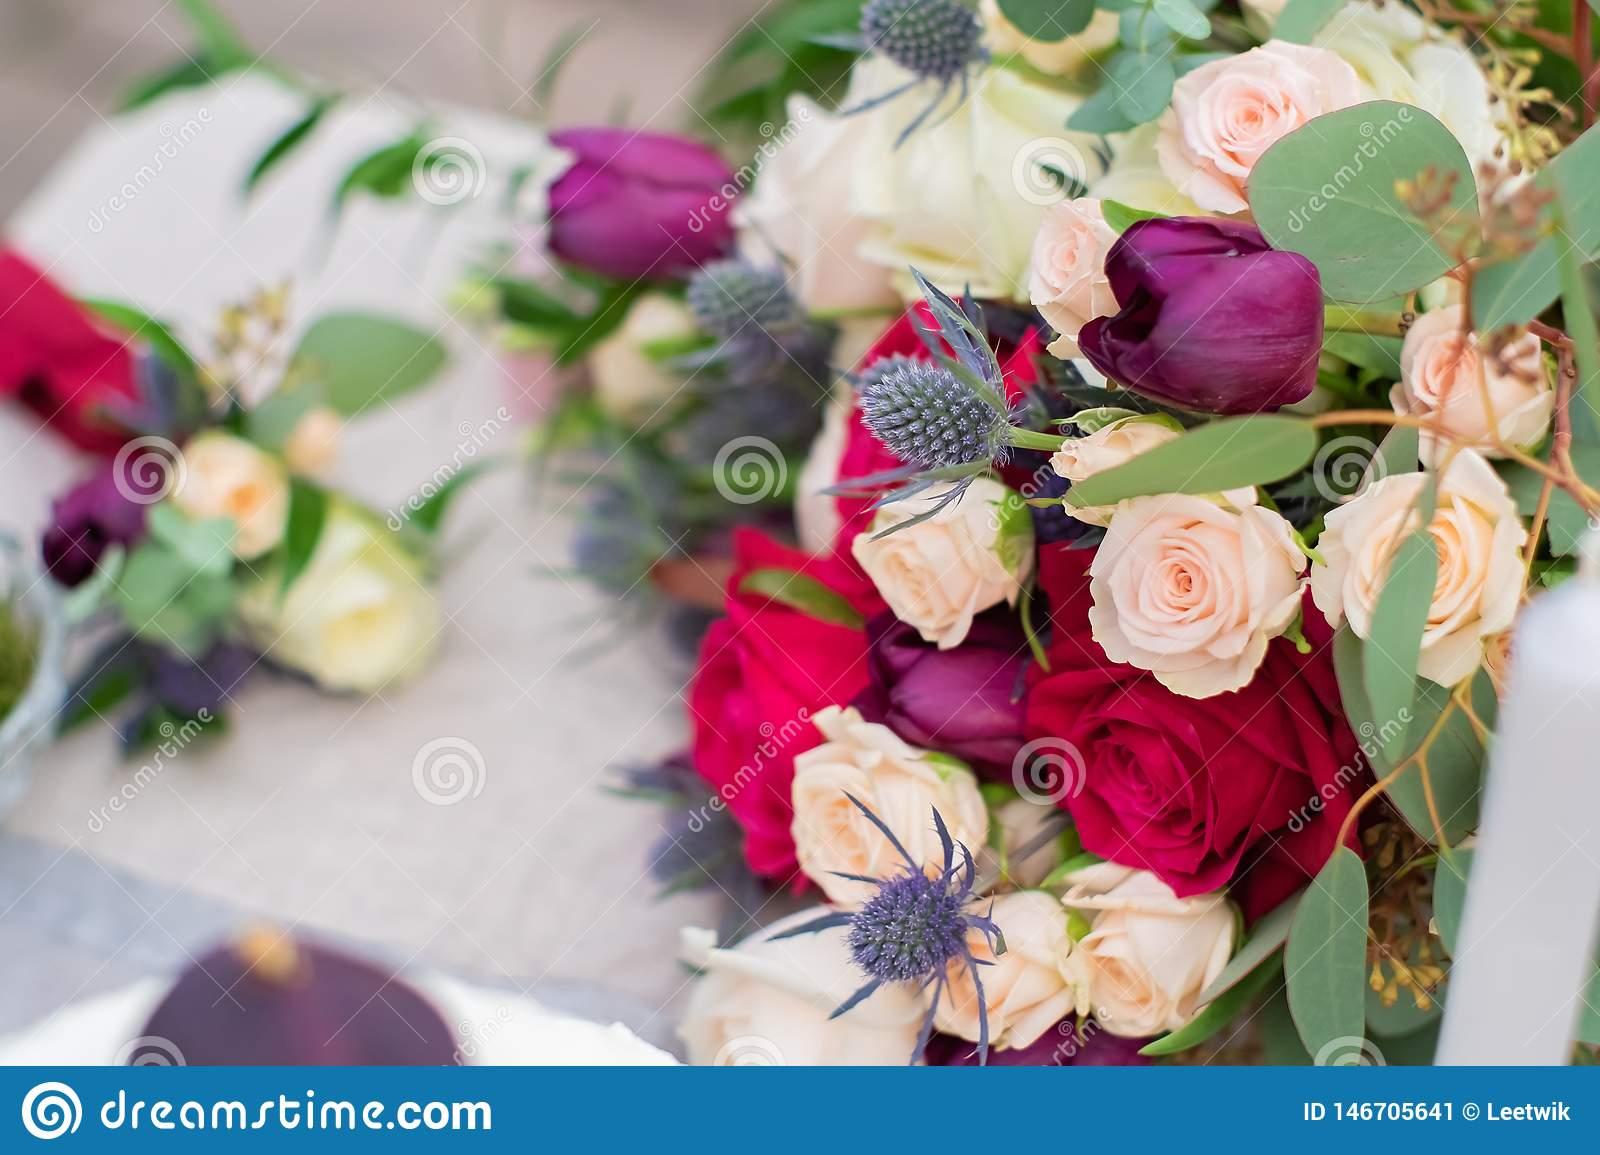 Delicate Wedding Bouquet With Burgundy Cream Pink Roses And Feverweed Closeup Stock Image Image Of Delicate Design 146705641